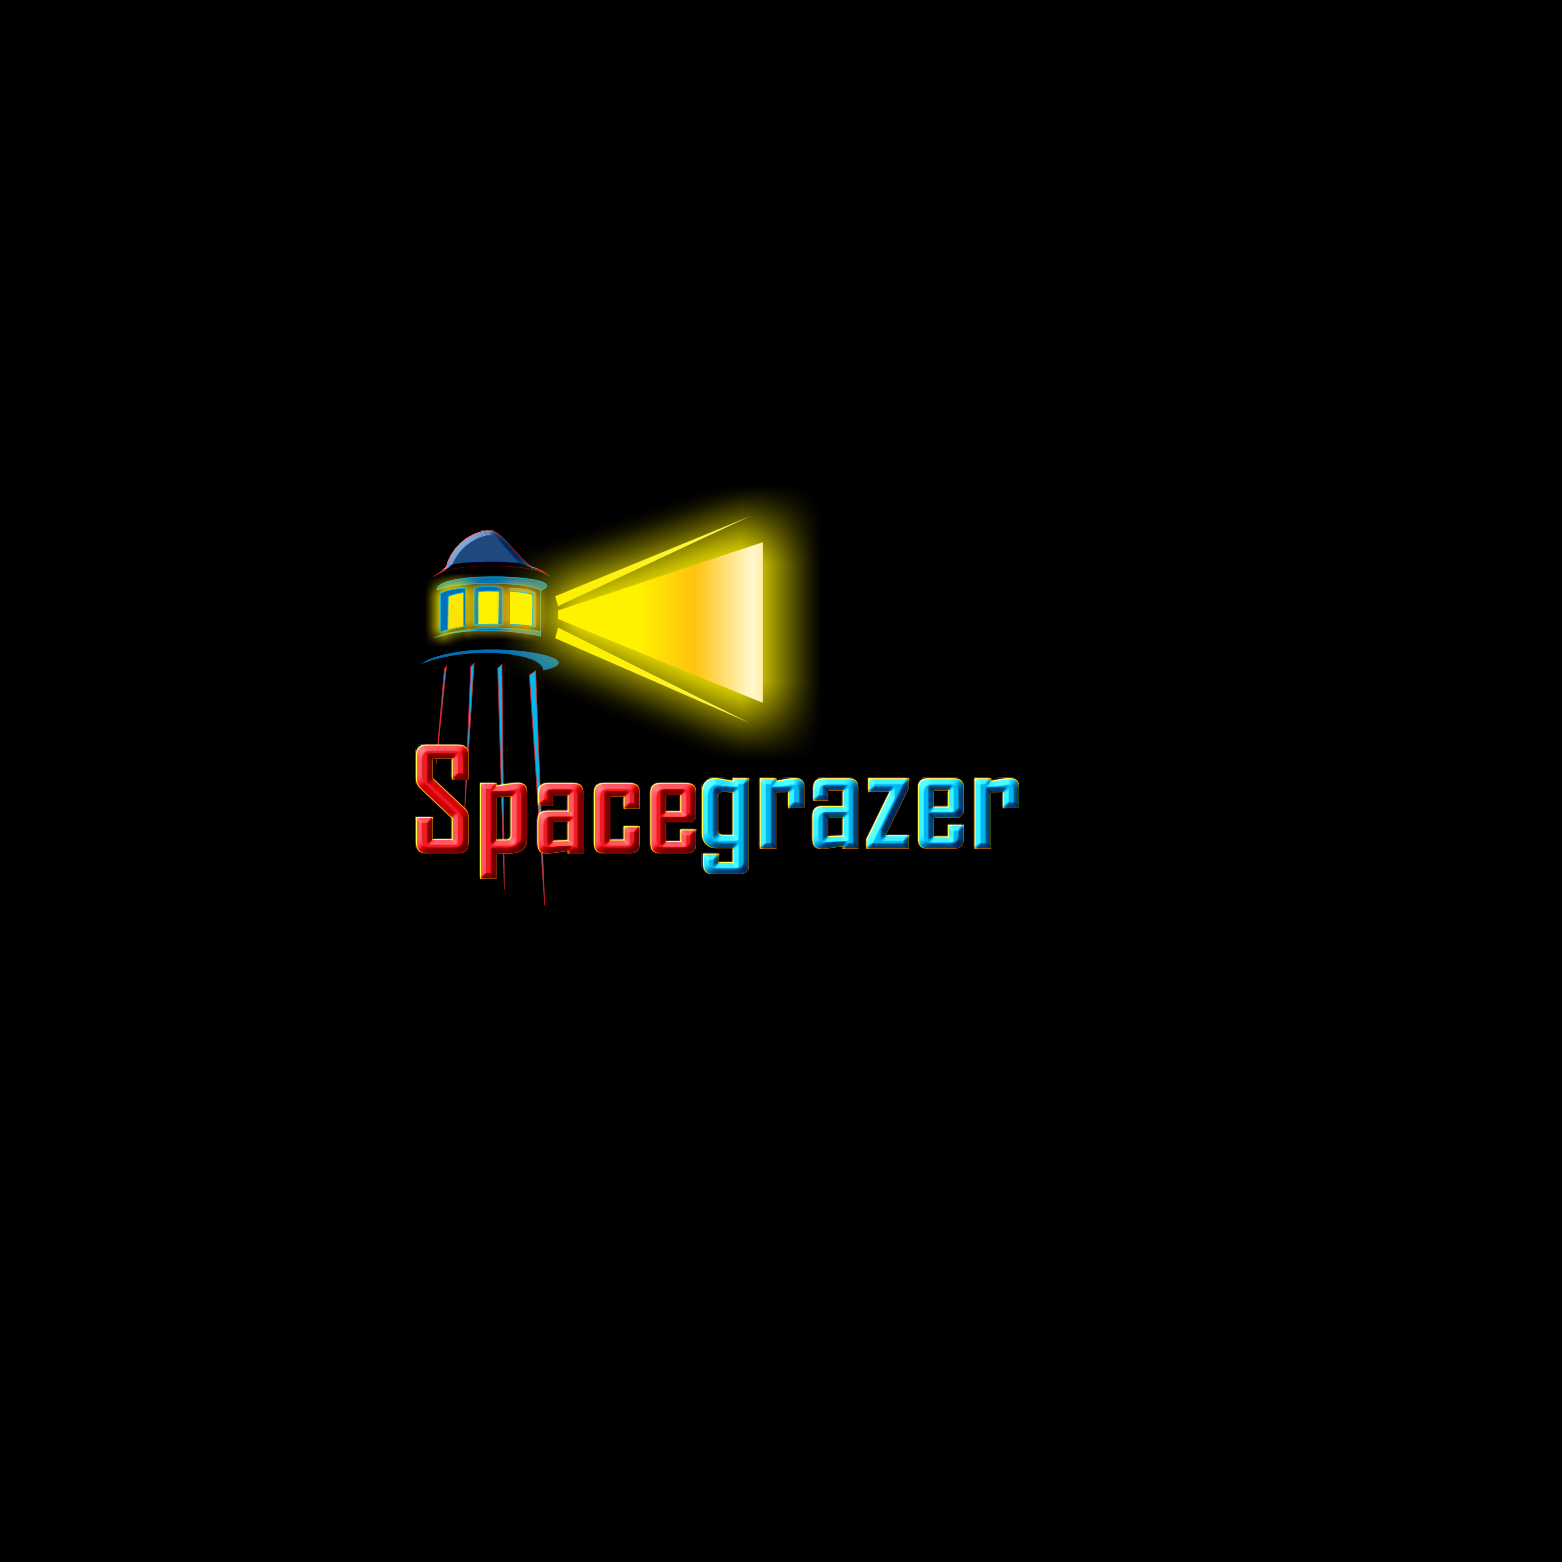 Logo Design by Steven Fitzpatrick - Entry No. 38 in the Logo Design Contest Fun Logo Design for Spacegrazer.